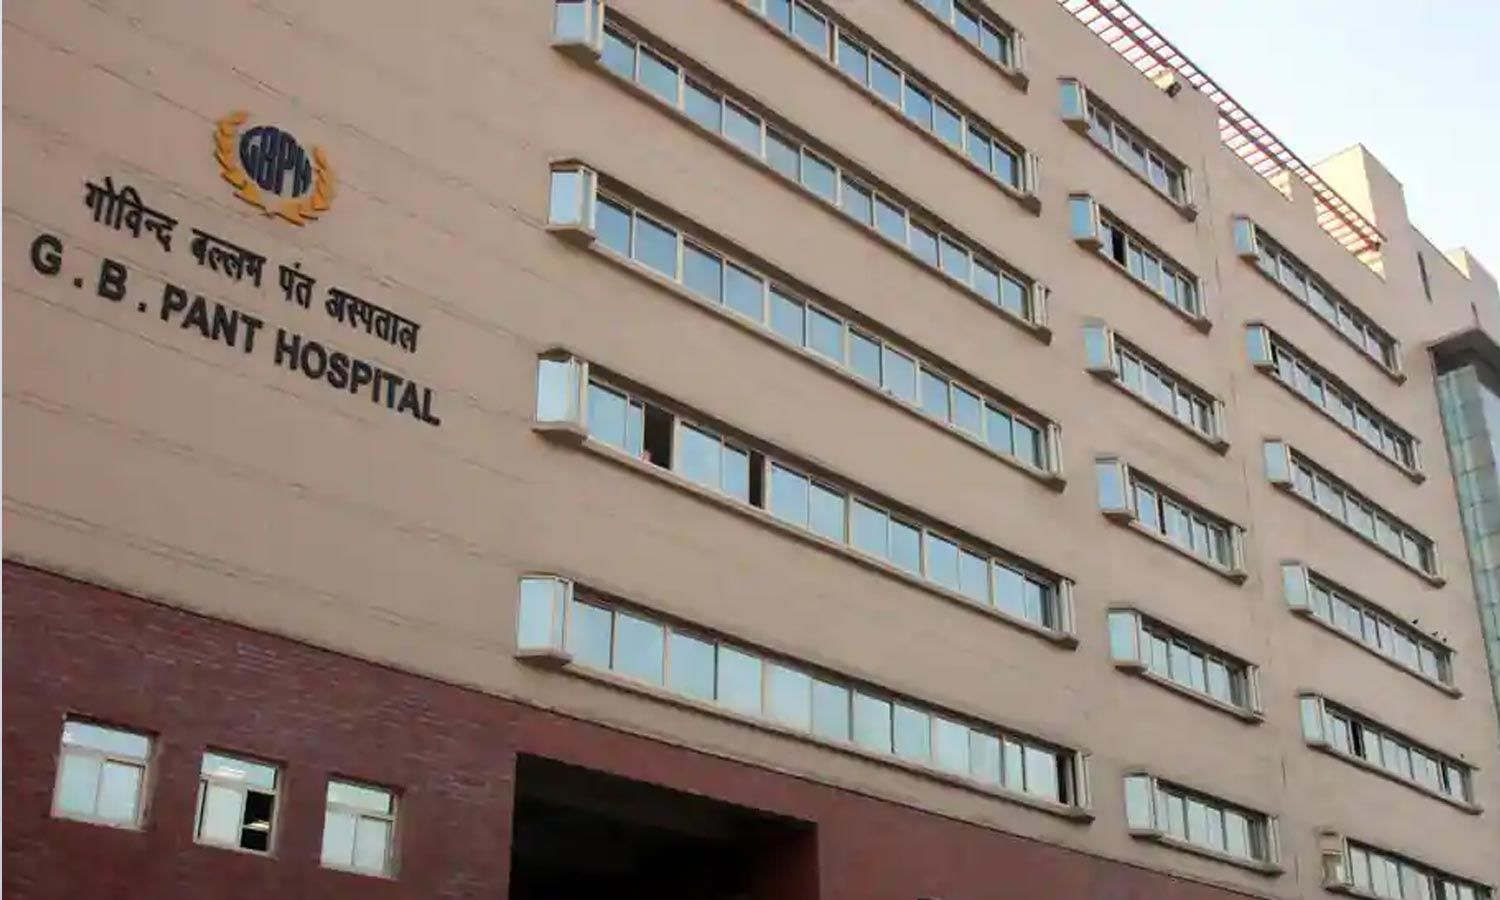 Delhi Govt nod to procurement of 18 more ventilators for neurosurgery patients at GB Pant hospital